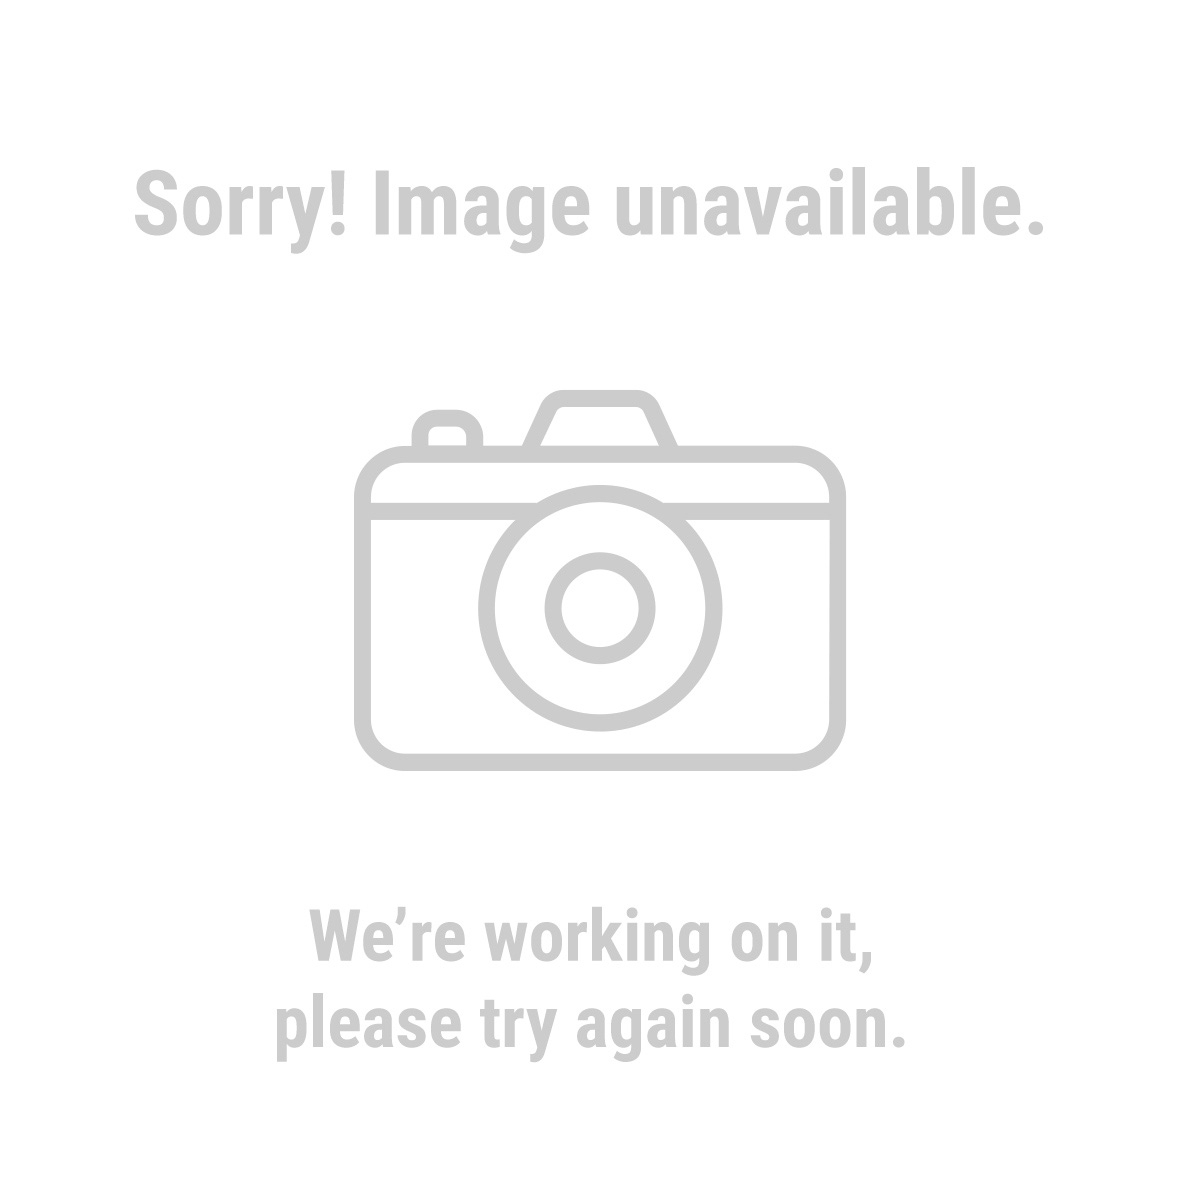 Admiral® 62741 12 in. 60T Finishing Circular Saw Blade